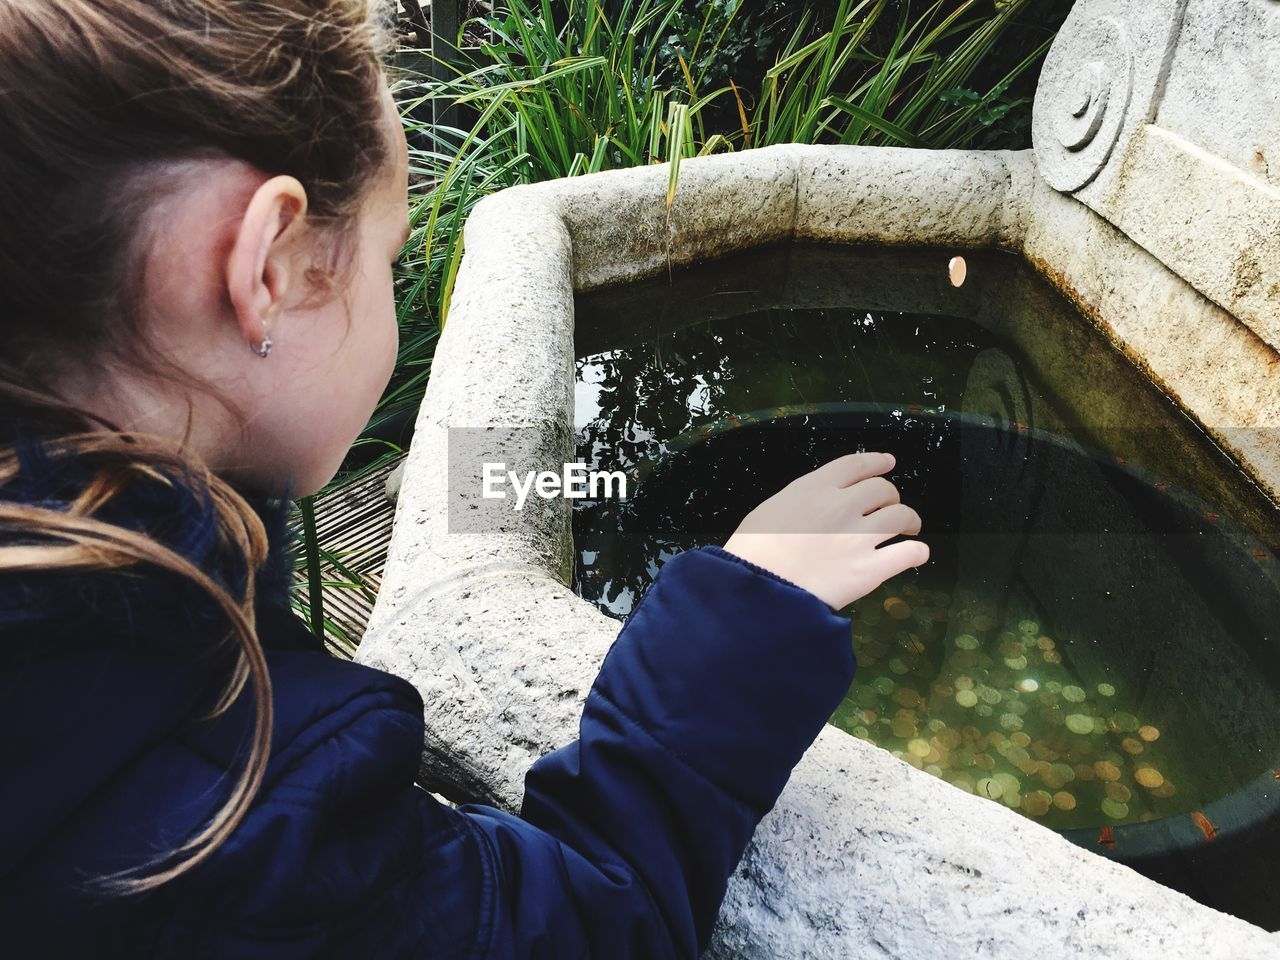 High Angle View Of Girl Throwing Coin In Wishing Well